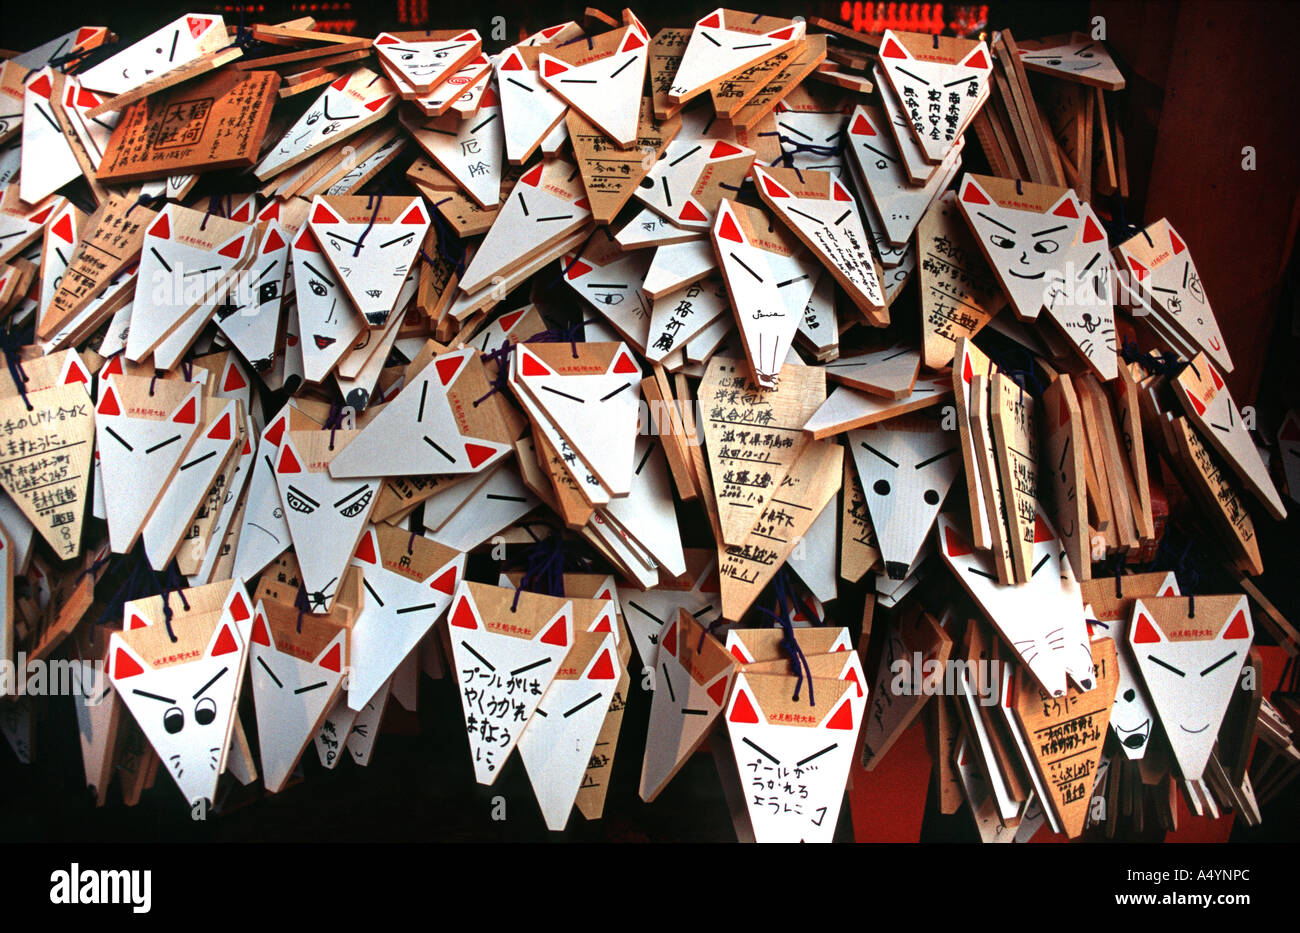 Wooden plaques in the shape of a fox heads with hand written wishes left at Fushimi Inari Taisha shrine in Kyoto JAPAN - Stock Image